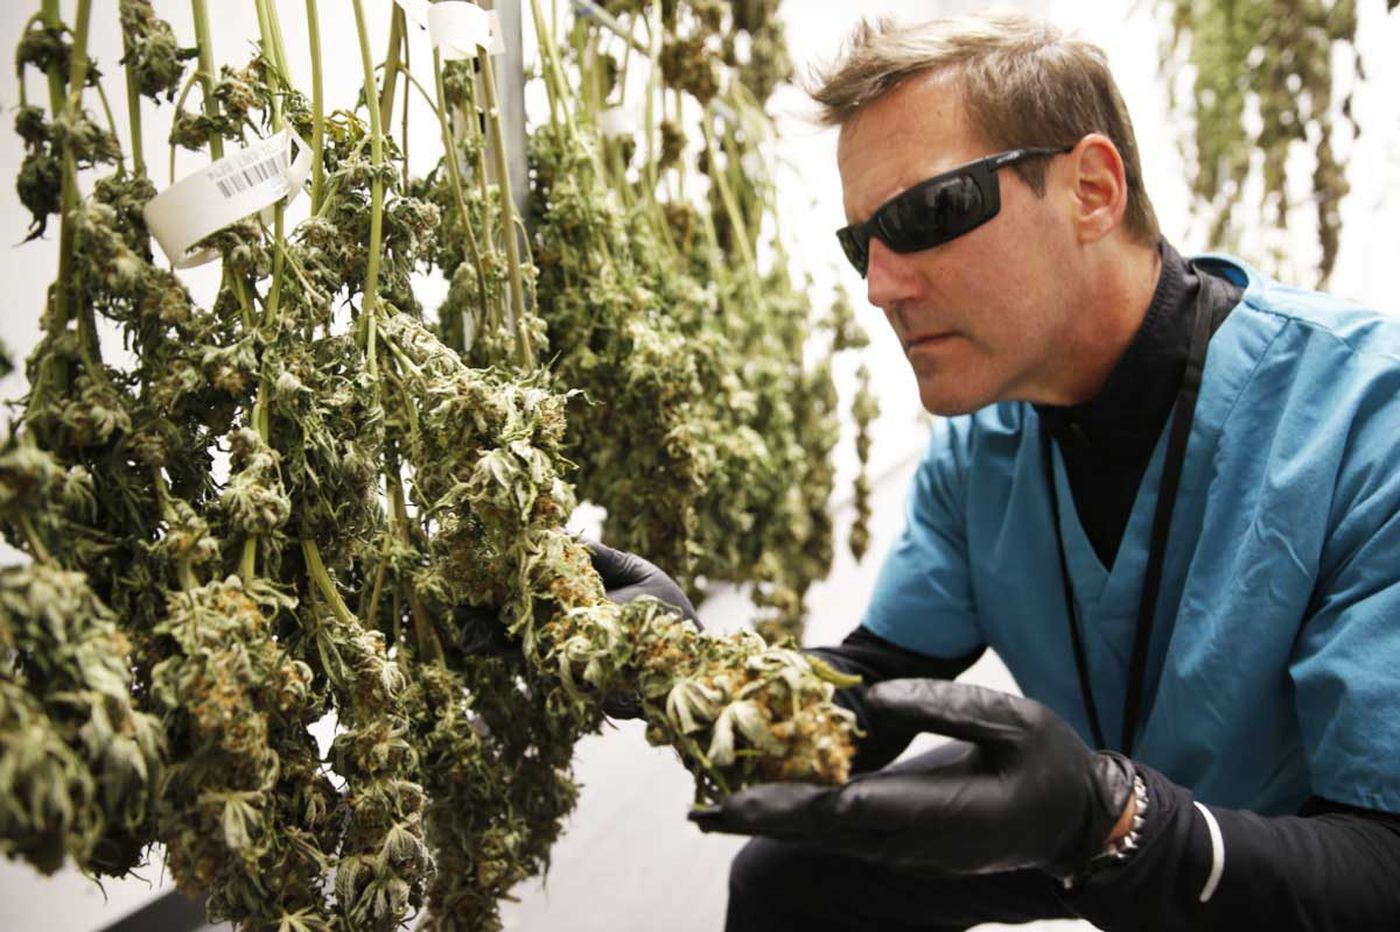 Philly area investment firm doubles down on marijuana